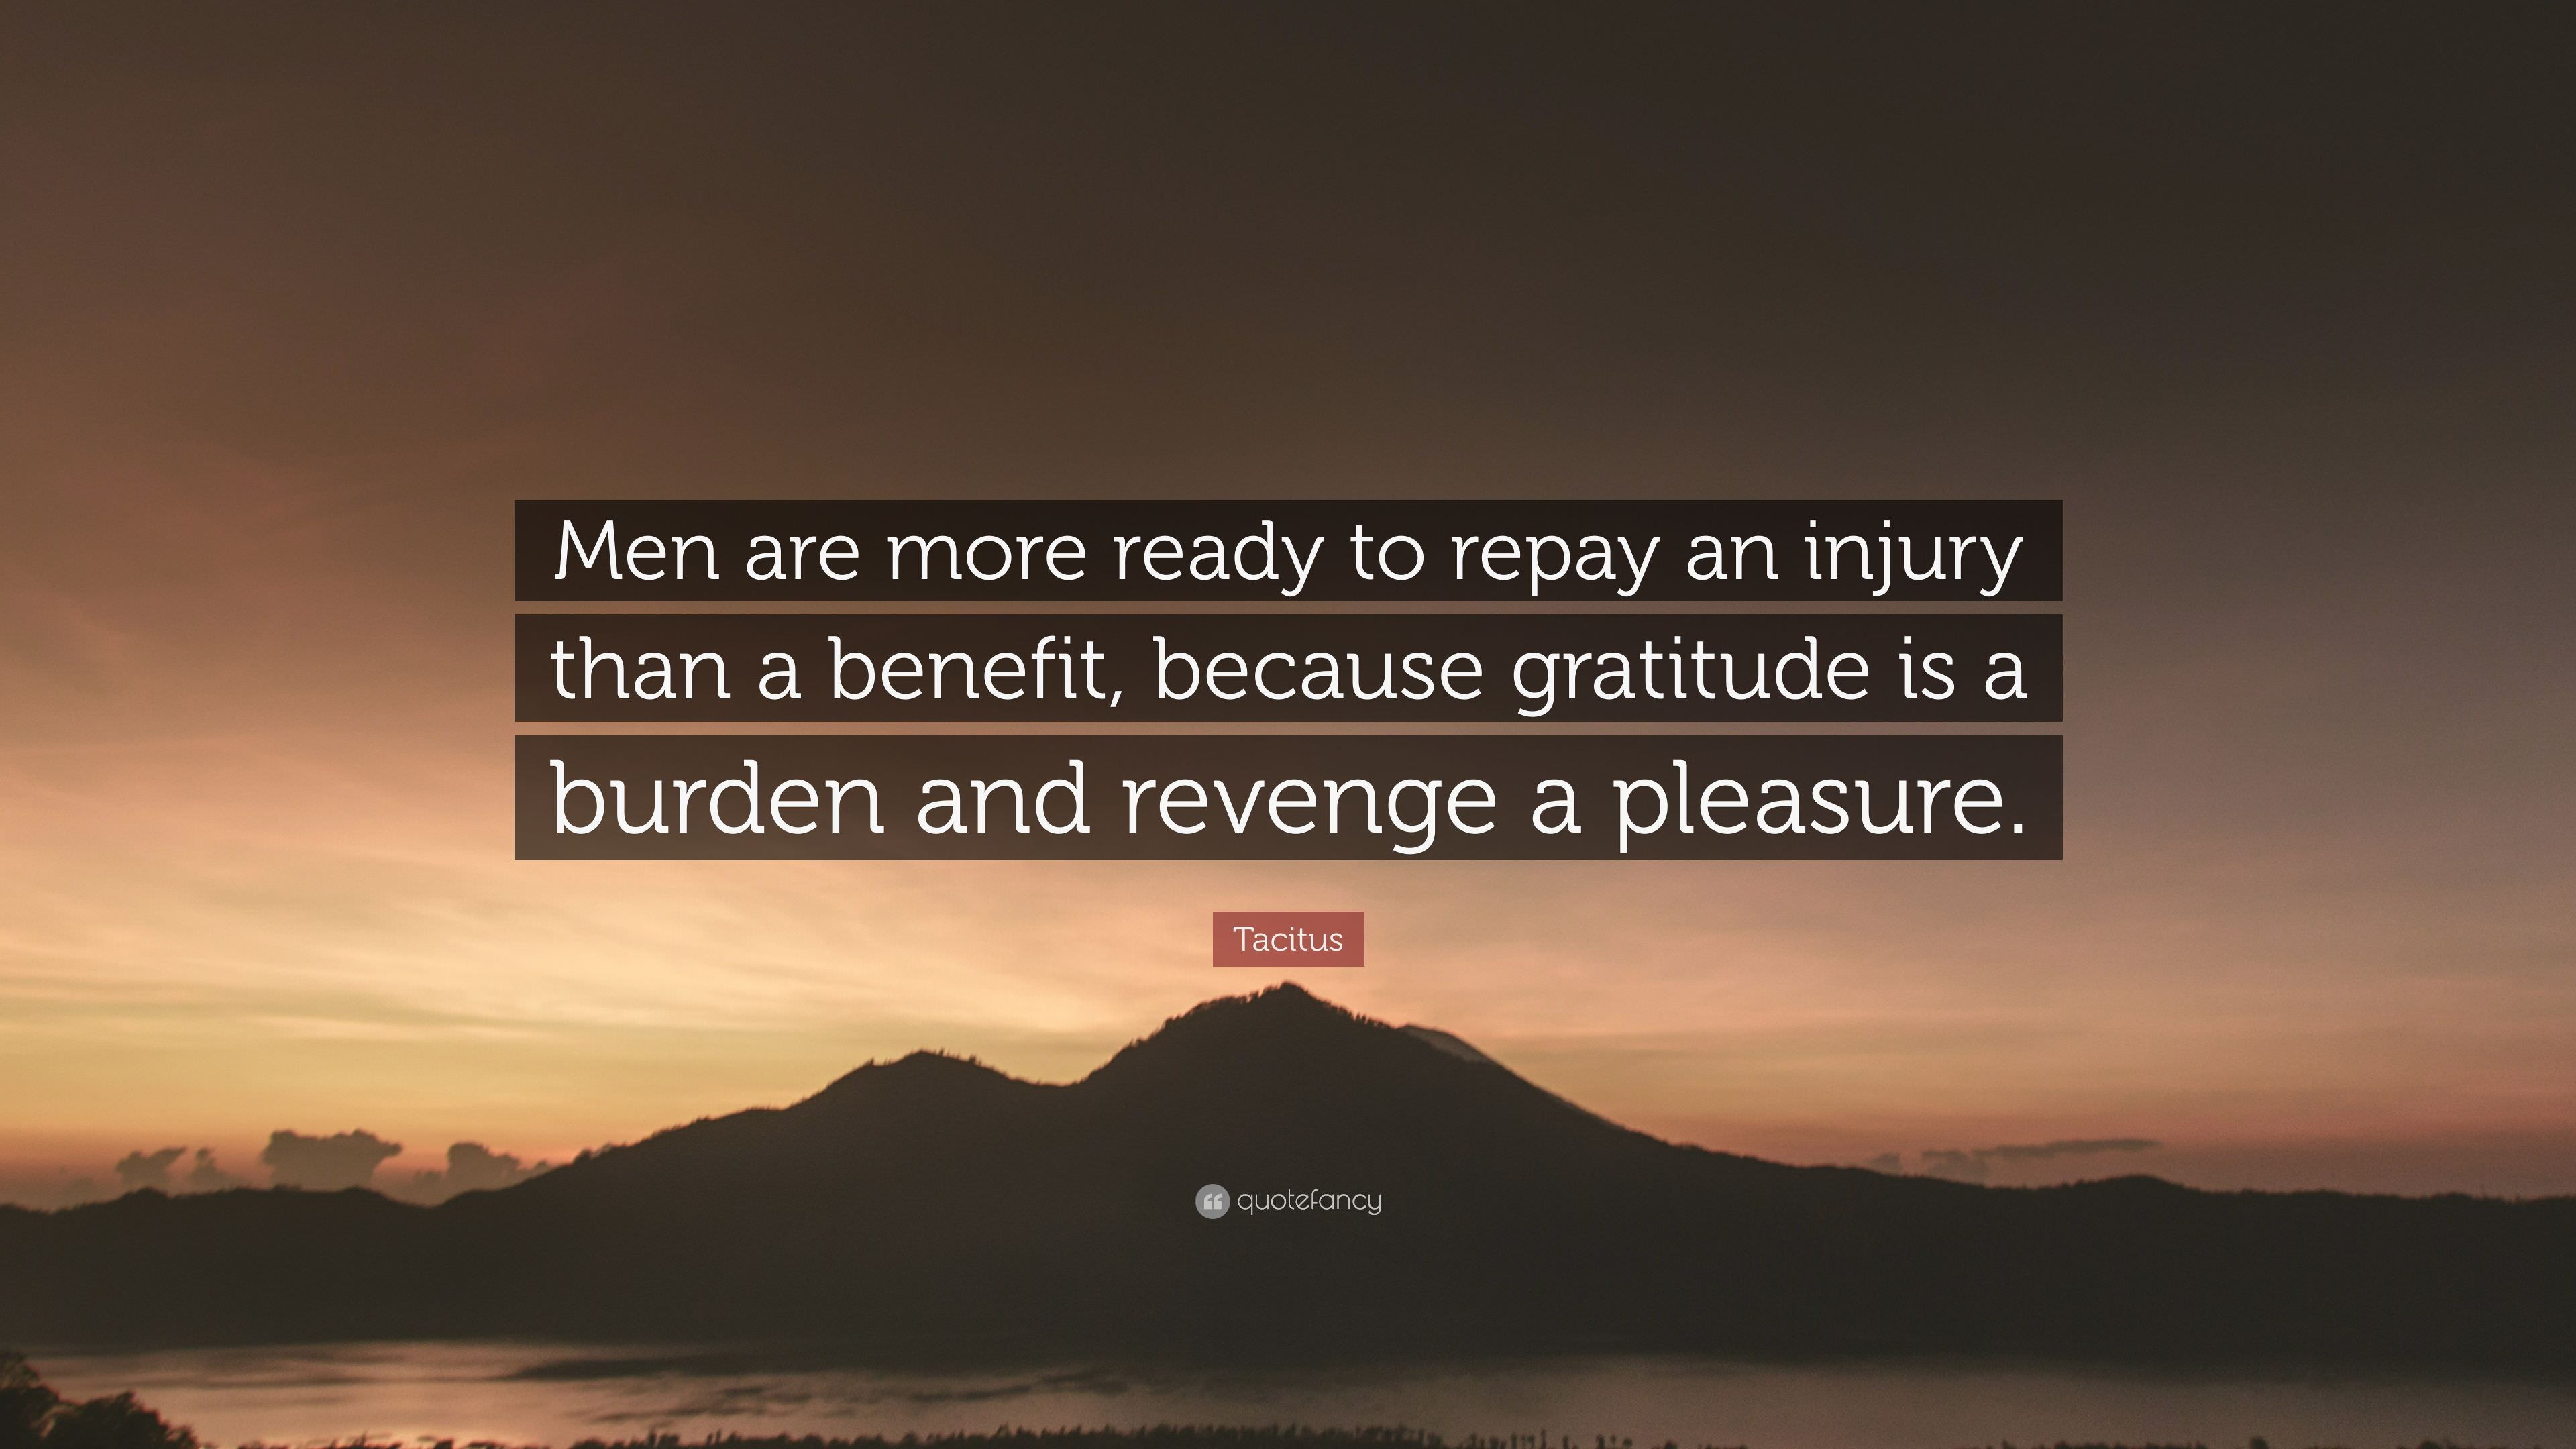 Men are more ready to repay an injury than a benefit, because gratitude is a burden and revenge a pleasure. – by Tacitus [3840×2160]